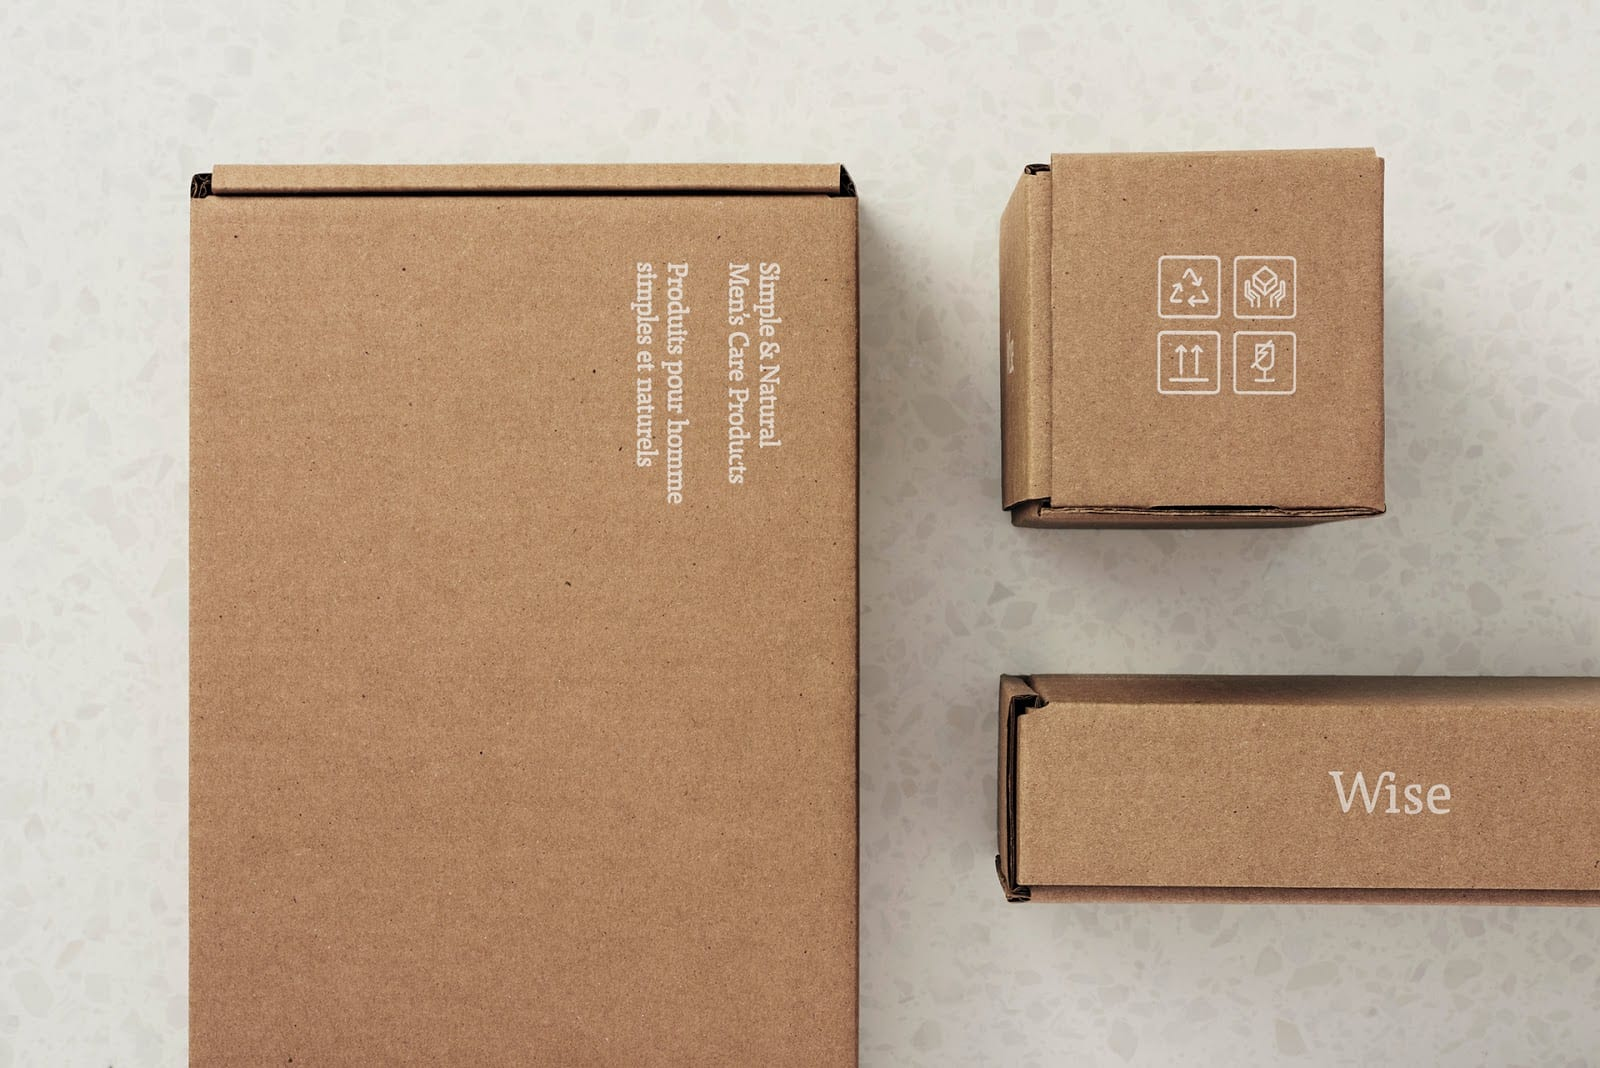 Wise Mens Care Brand Identity and Packaging 013 - Ach, tie obaly – péče Wise Men